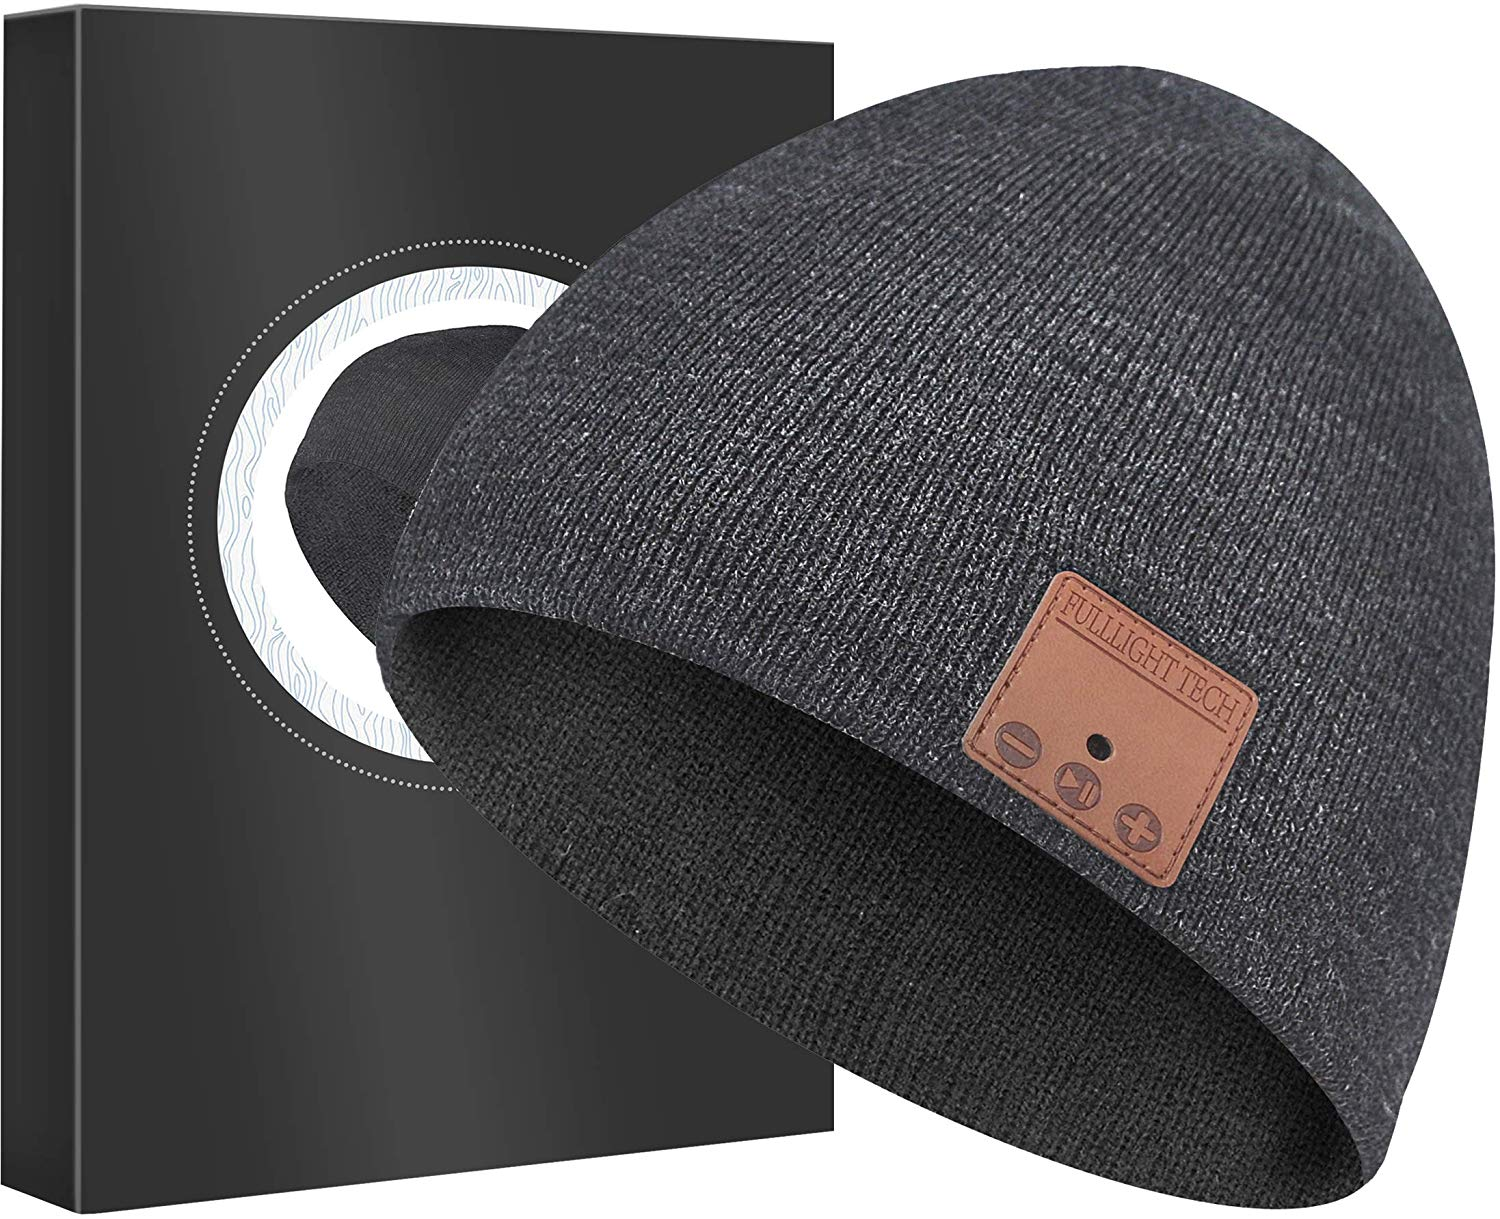 If your teen needs to simultaneously stay warm and listen to their favorite playlists or podcasts, this Bluetooth-enabled beanie is a tech-savvy choice.